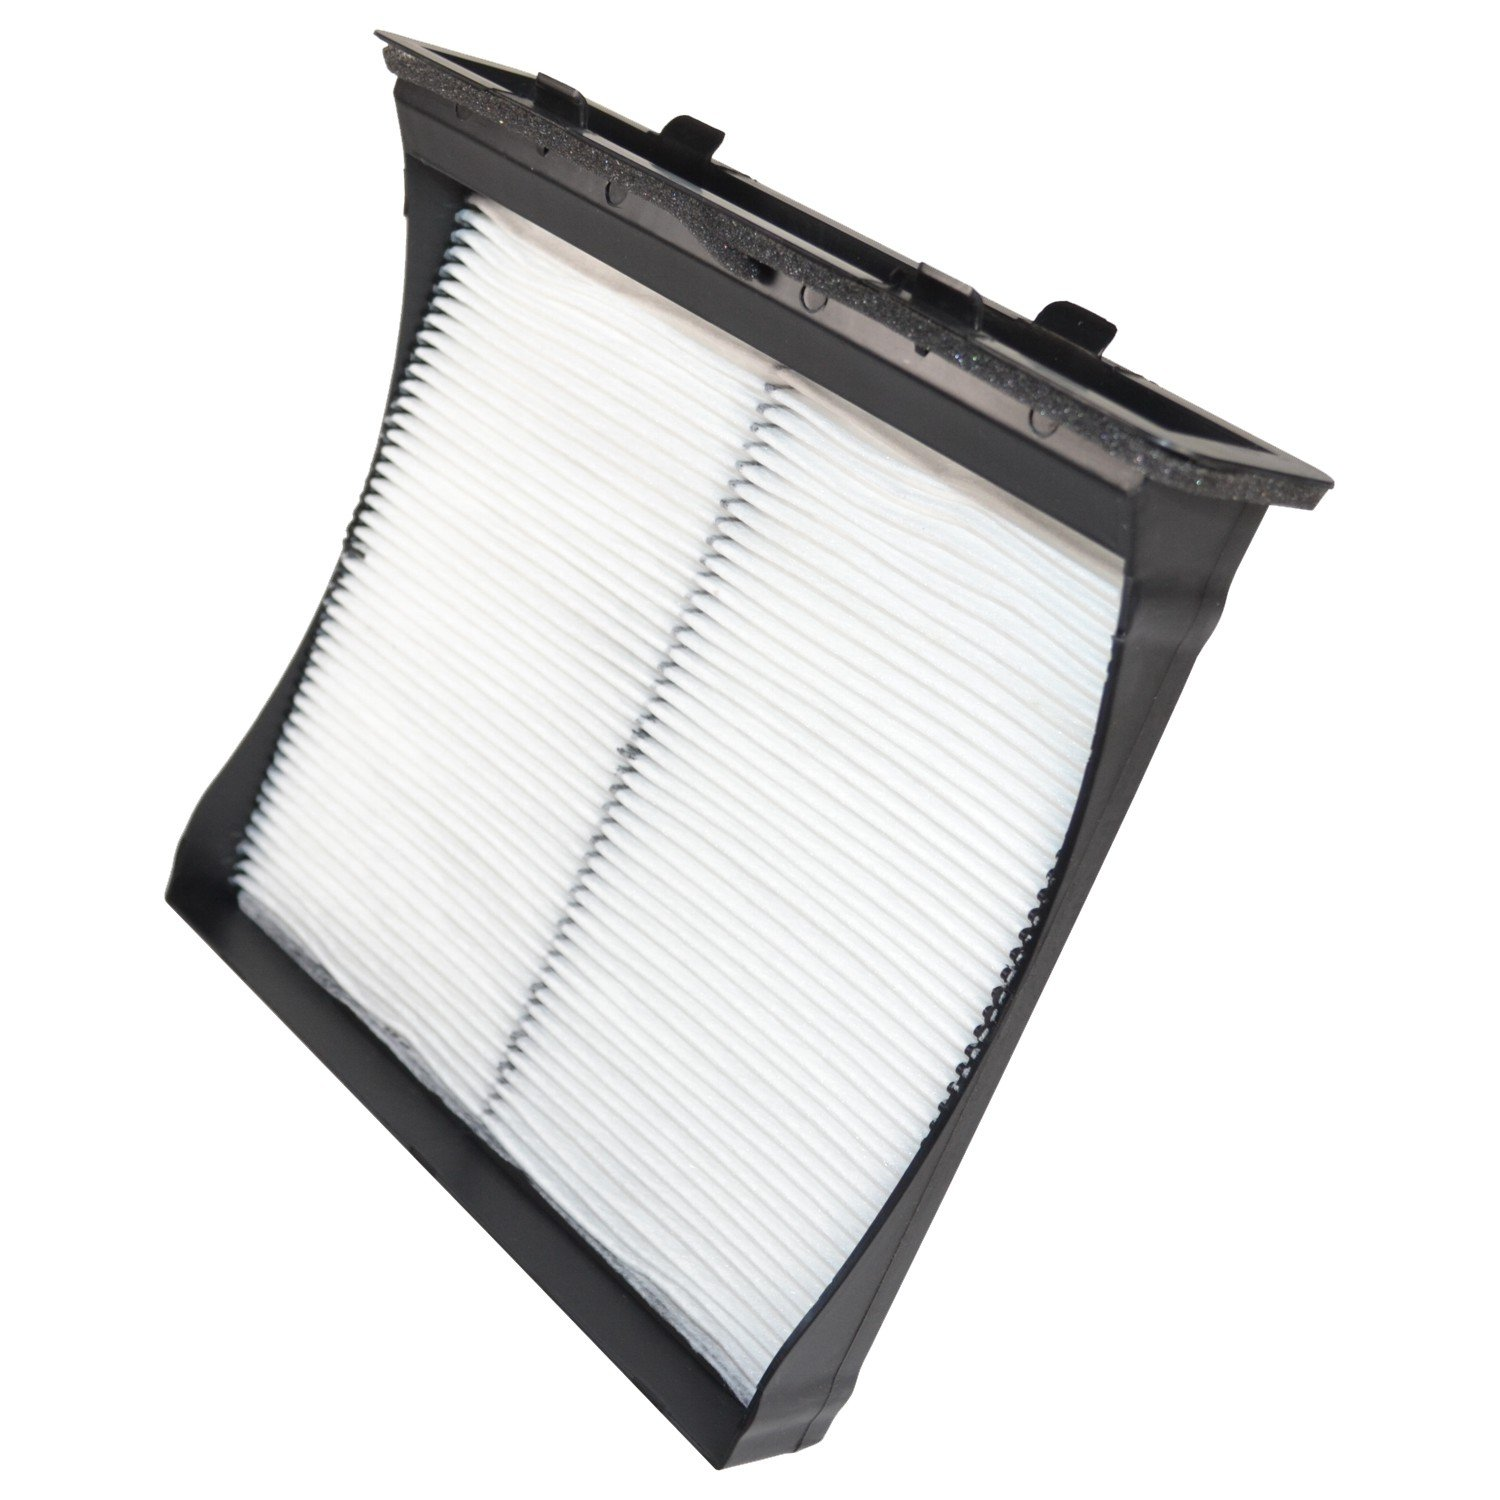 2012 2010 HQRP Cabin Air Filter for Subaru Forester 2009 2011